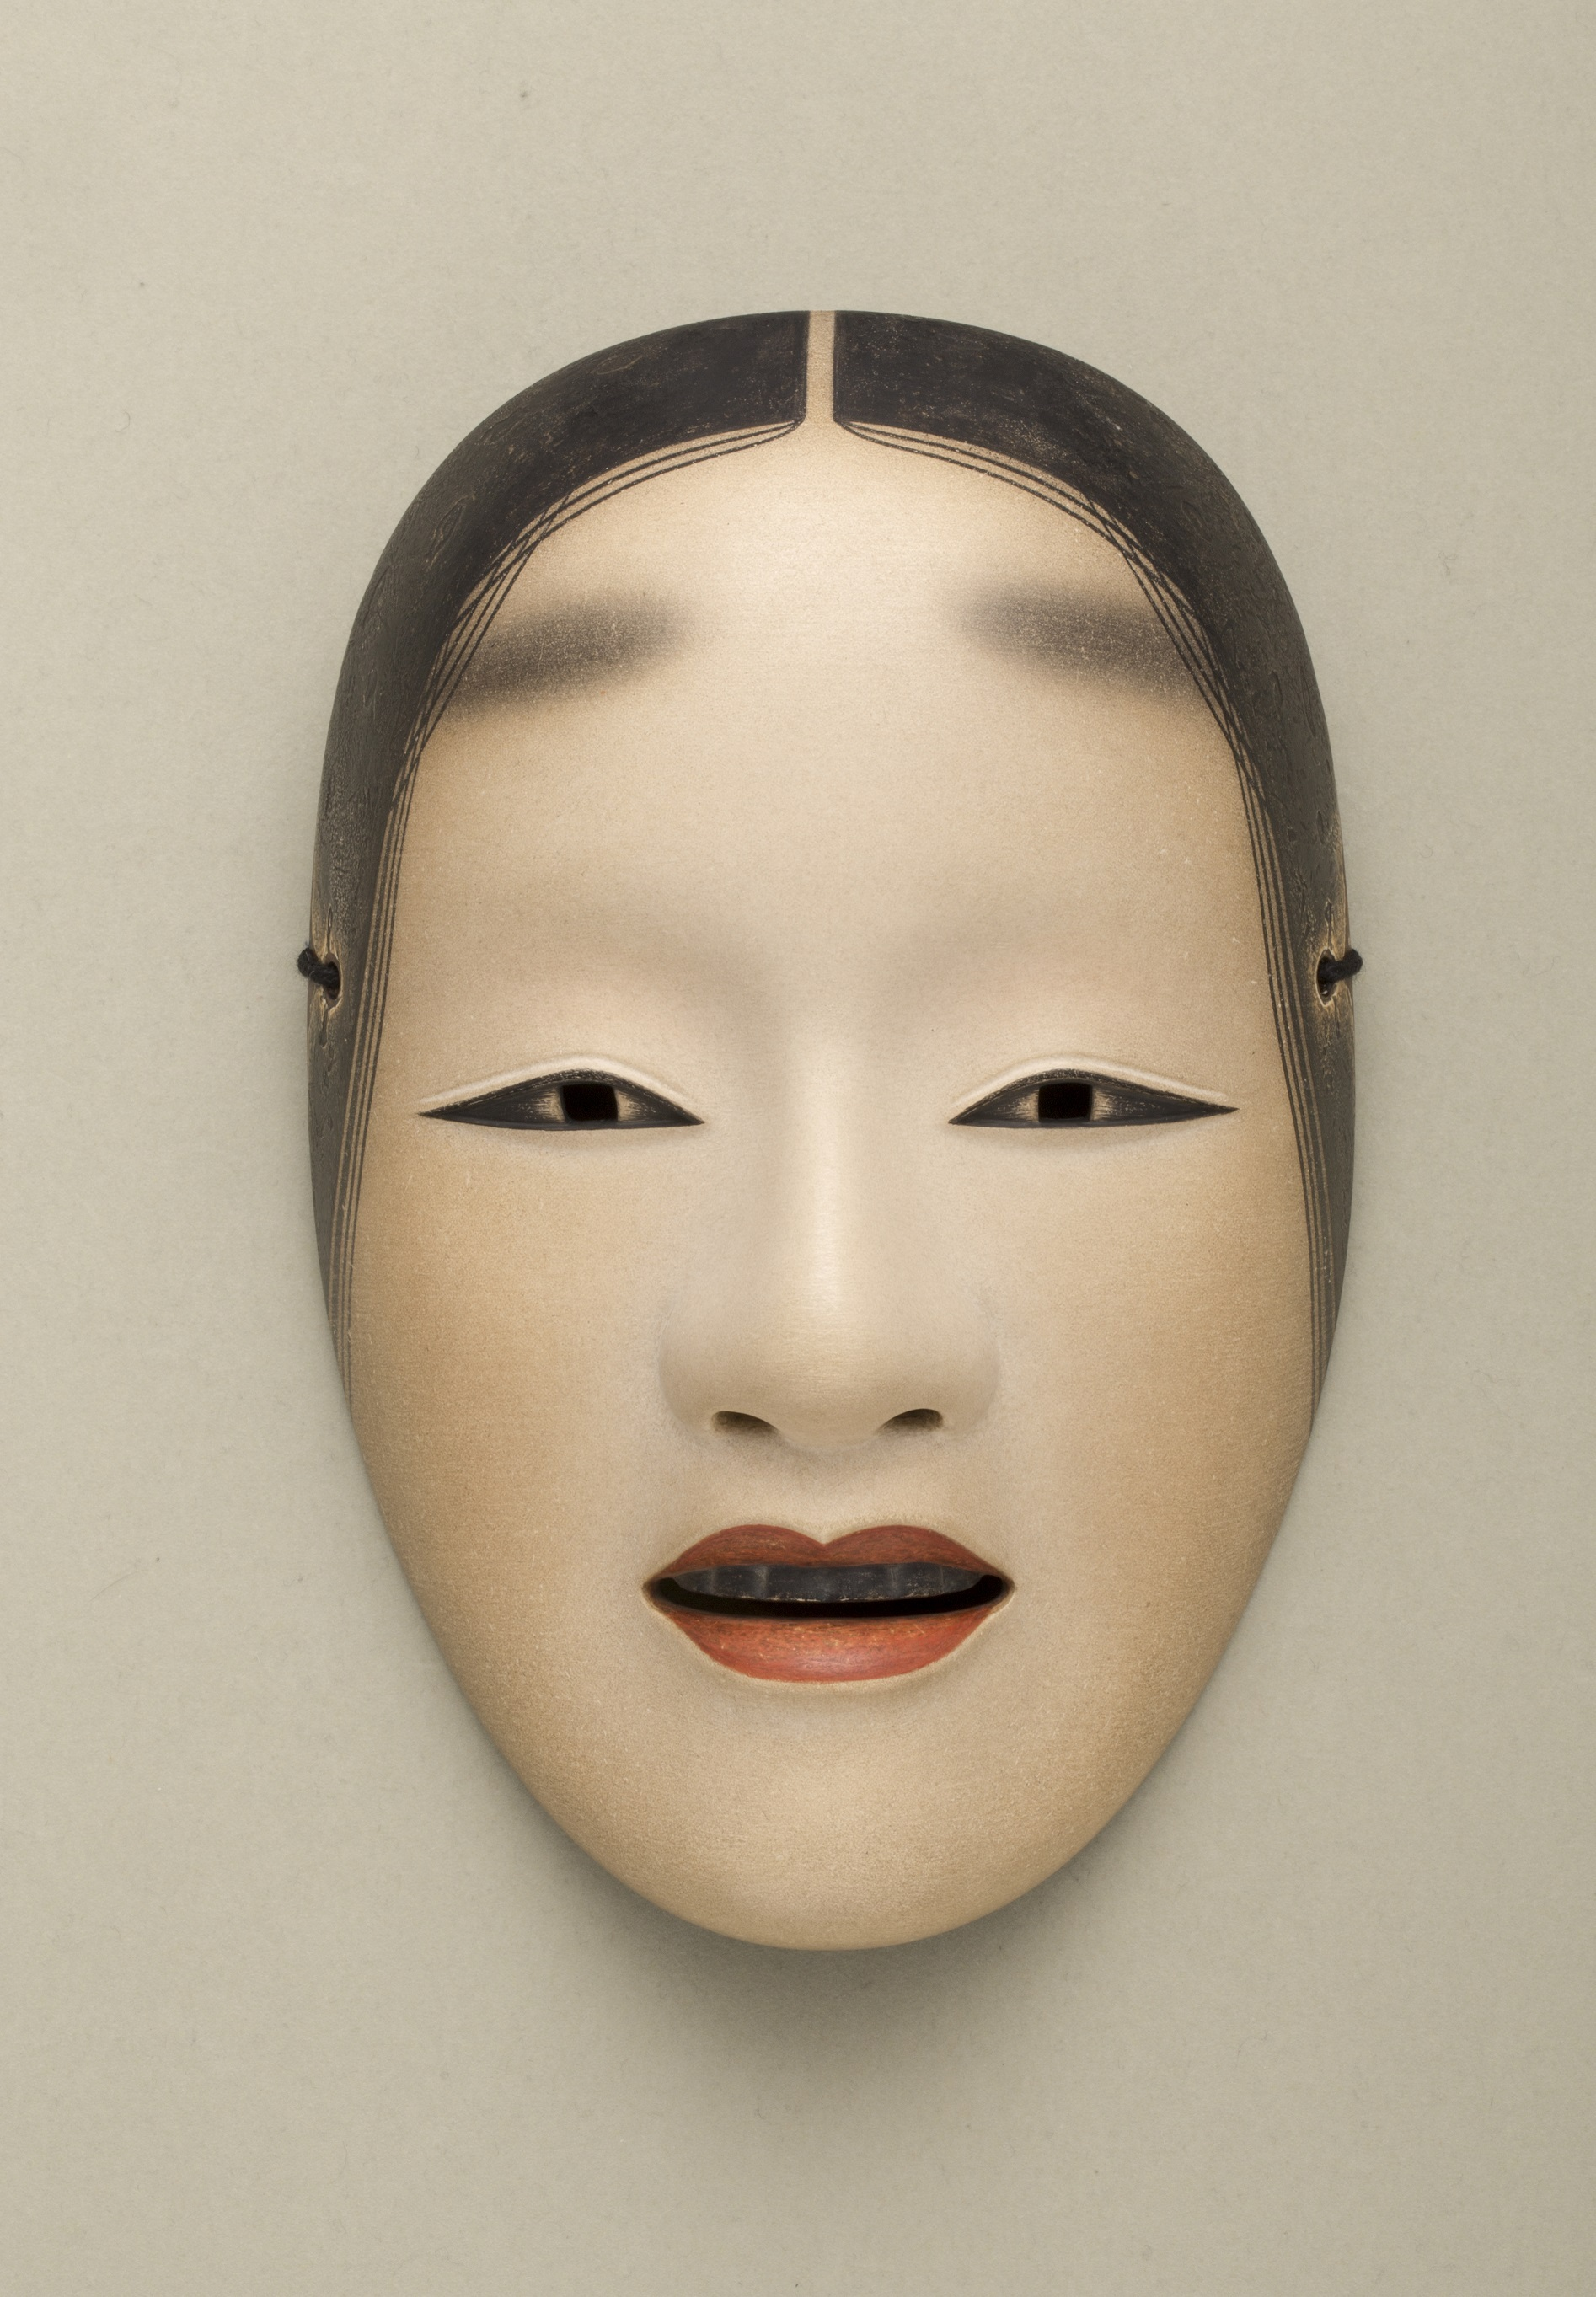 """In the exhibition of Japanese Traditional Performing Art """"Noh"""" hosted by Keio Plaza Hotel Tokyo, the Noh masks and costumes will be on display. (Photo: Business Wire)"""